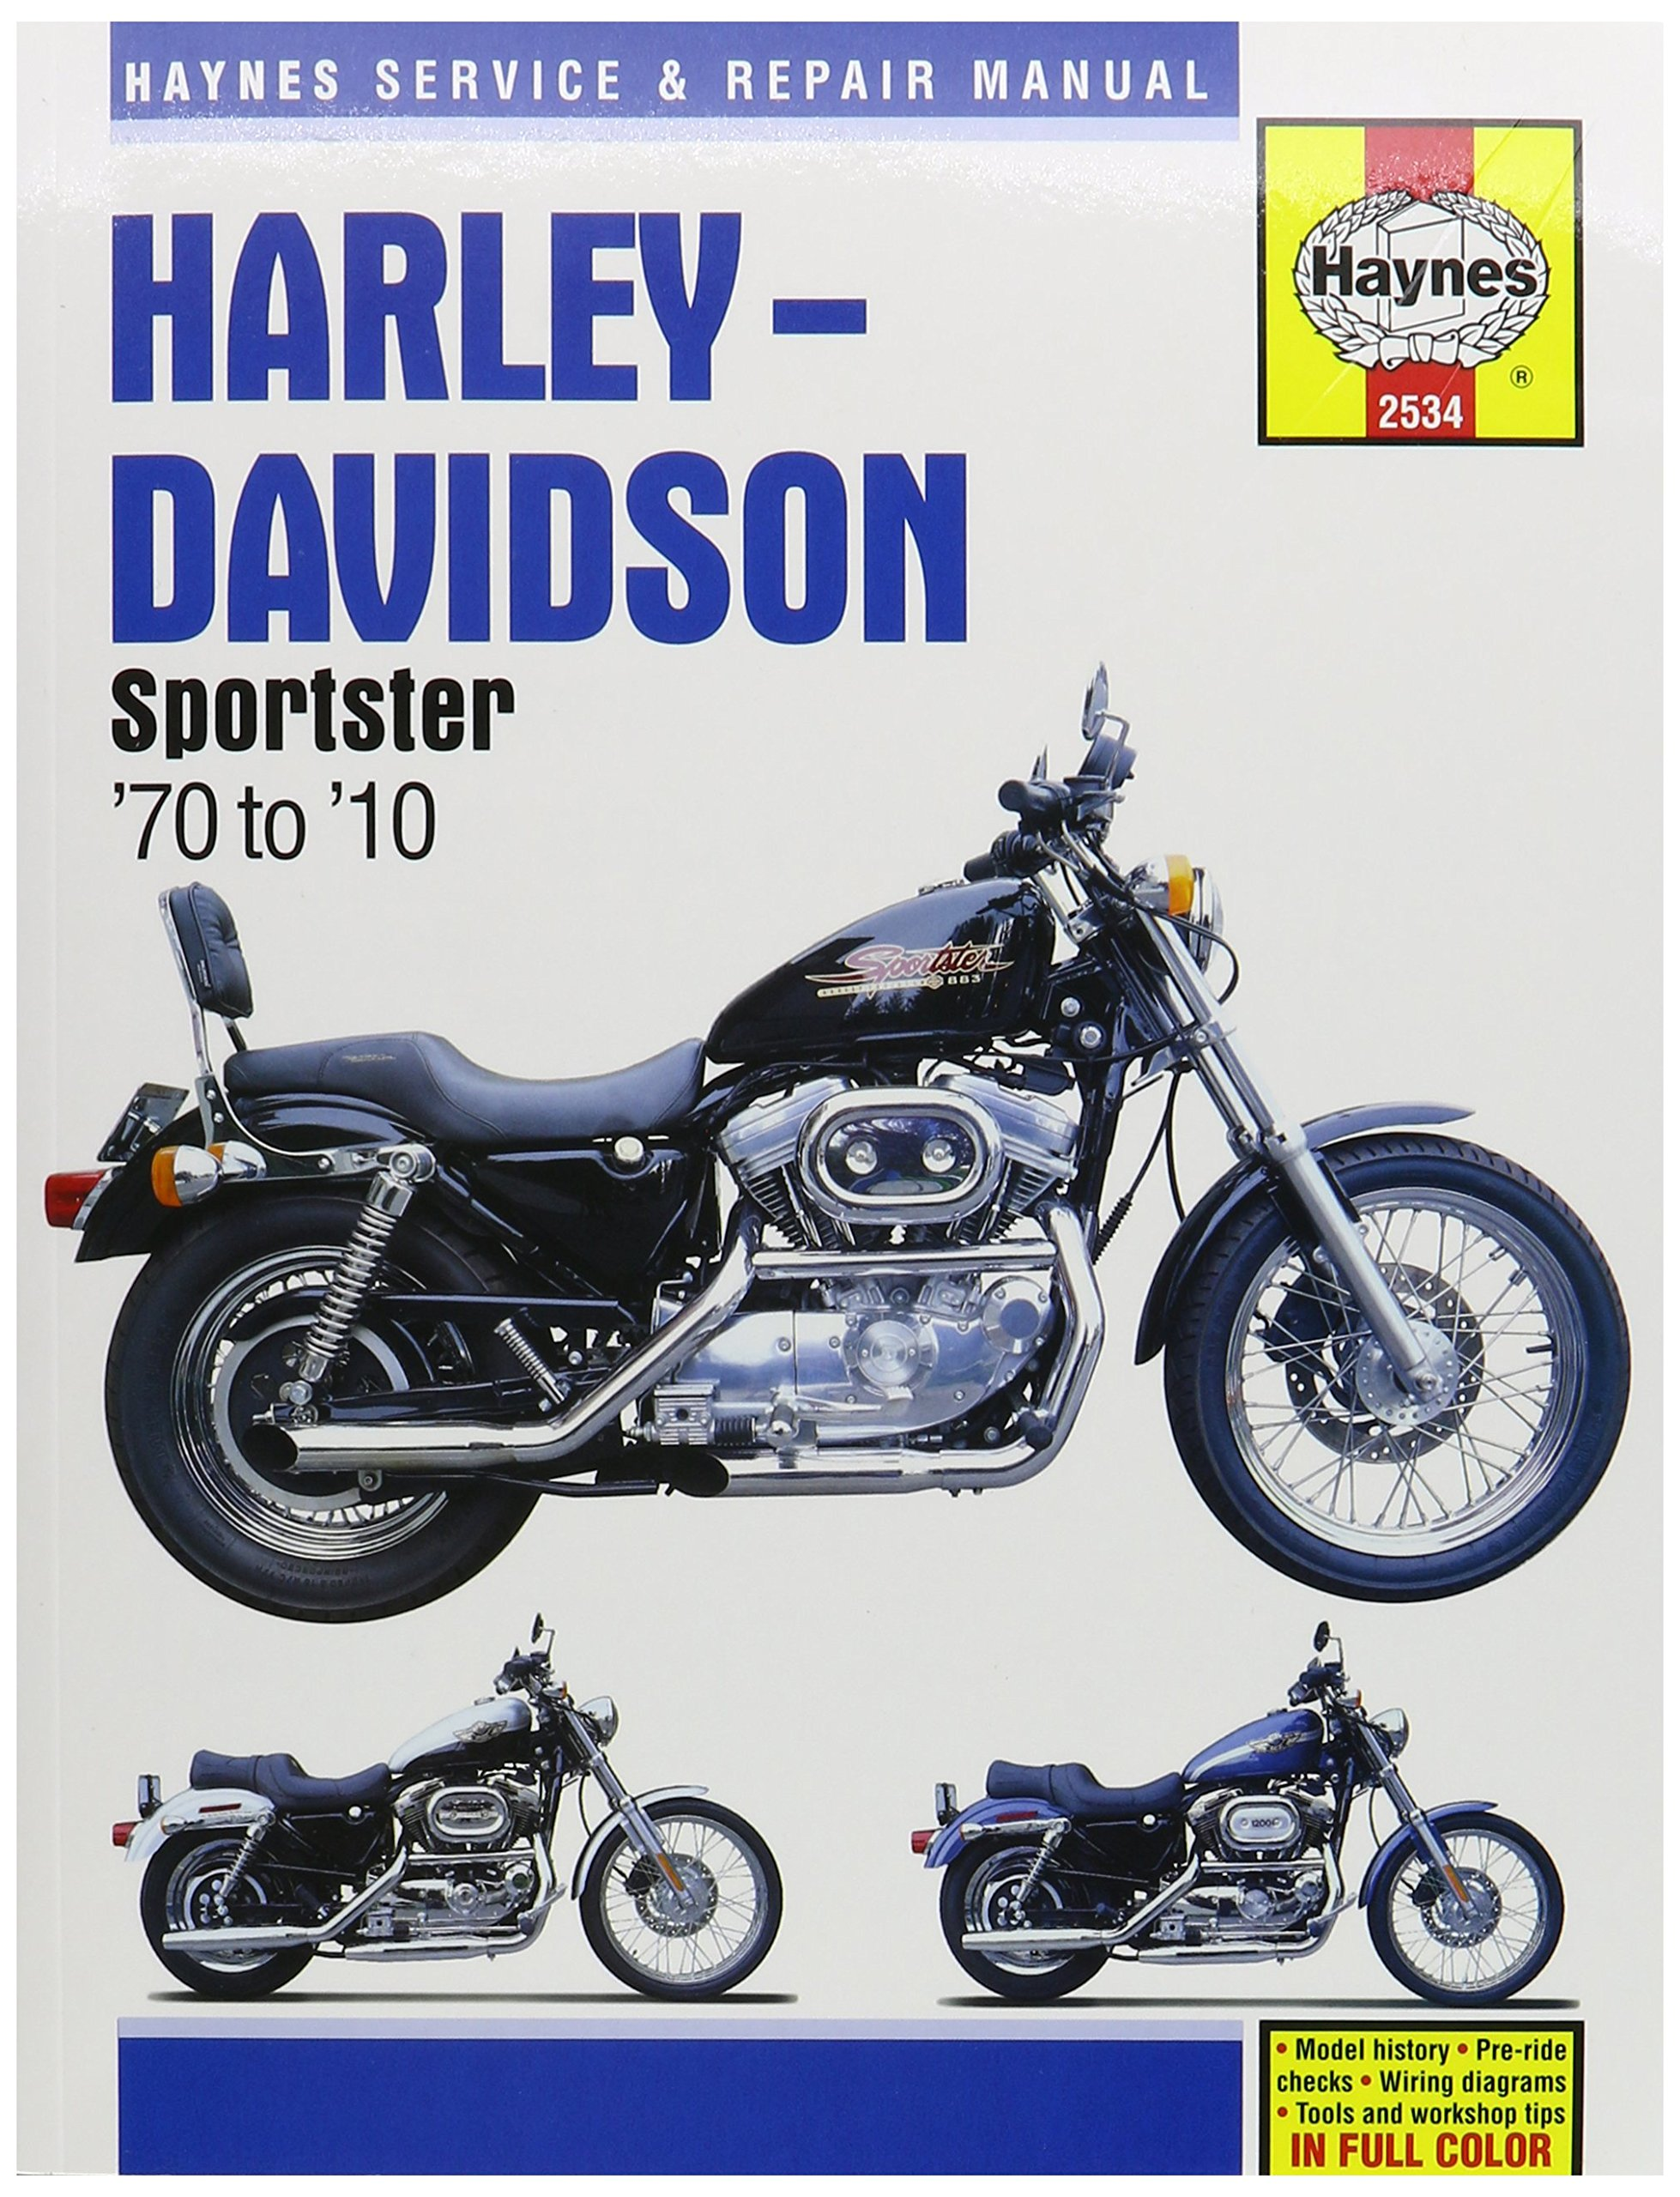 Cheap Harley 1200 Find Deals On Line At Alibabacom 2012 Road Glide Wiring Diagram Get Quotations 1970 2013 Davidson Sportster Xl 883 Haynes Manual 2534